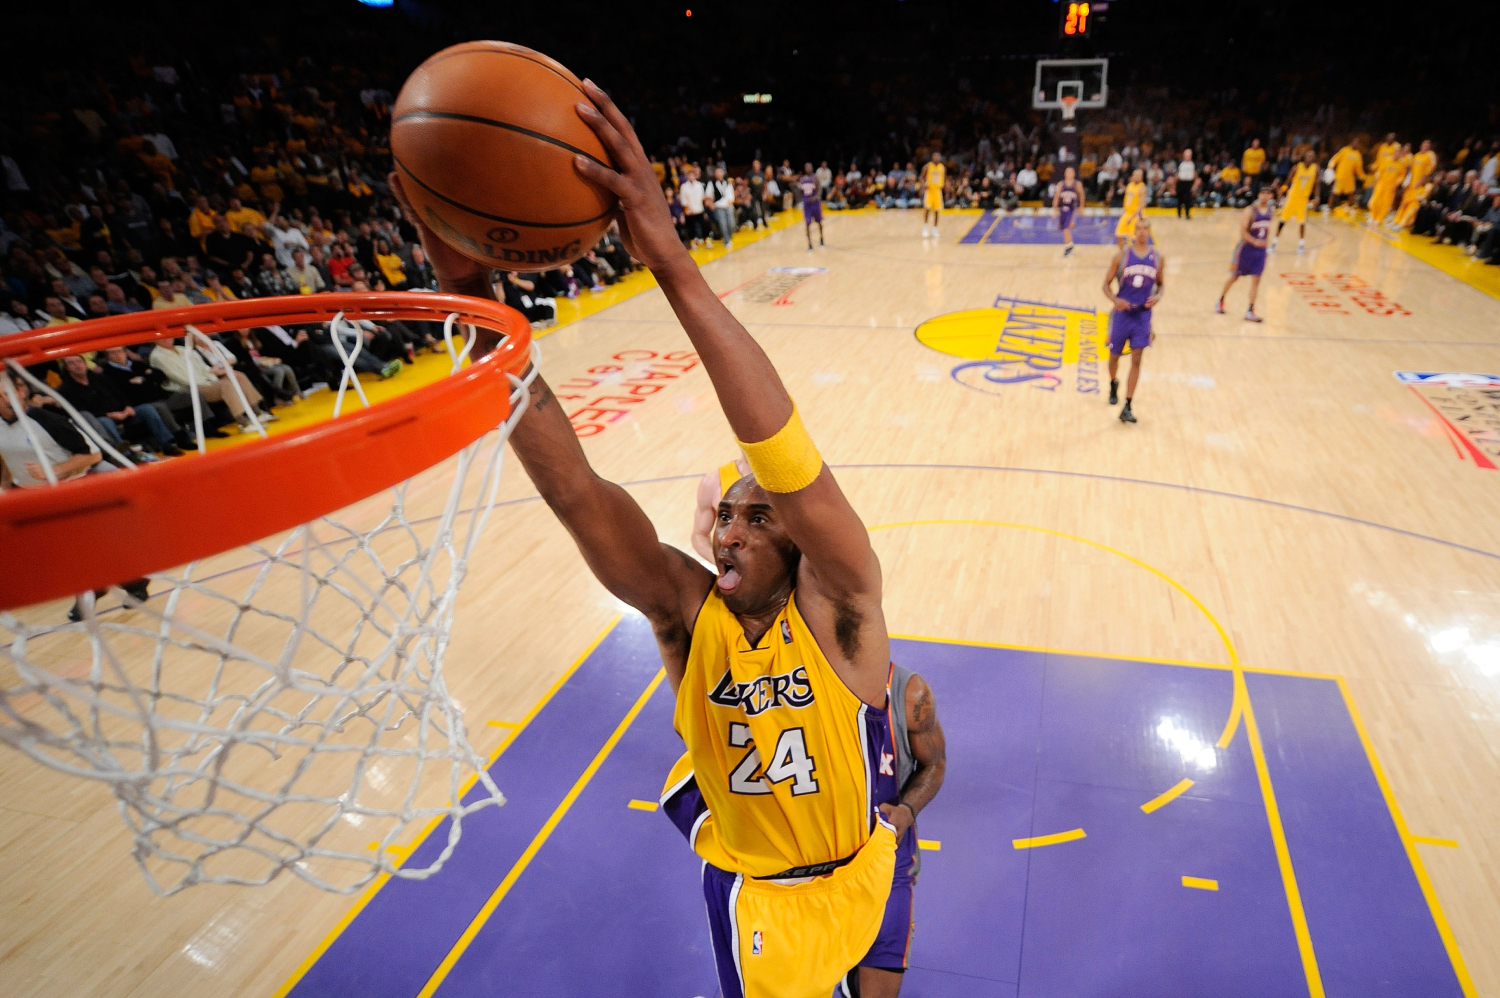 Kobe Bryant was an iconic basketball player for the LA Lakers. Since his tragic death, Bryant has actually continued to make millions.